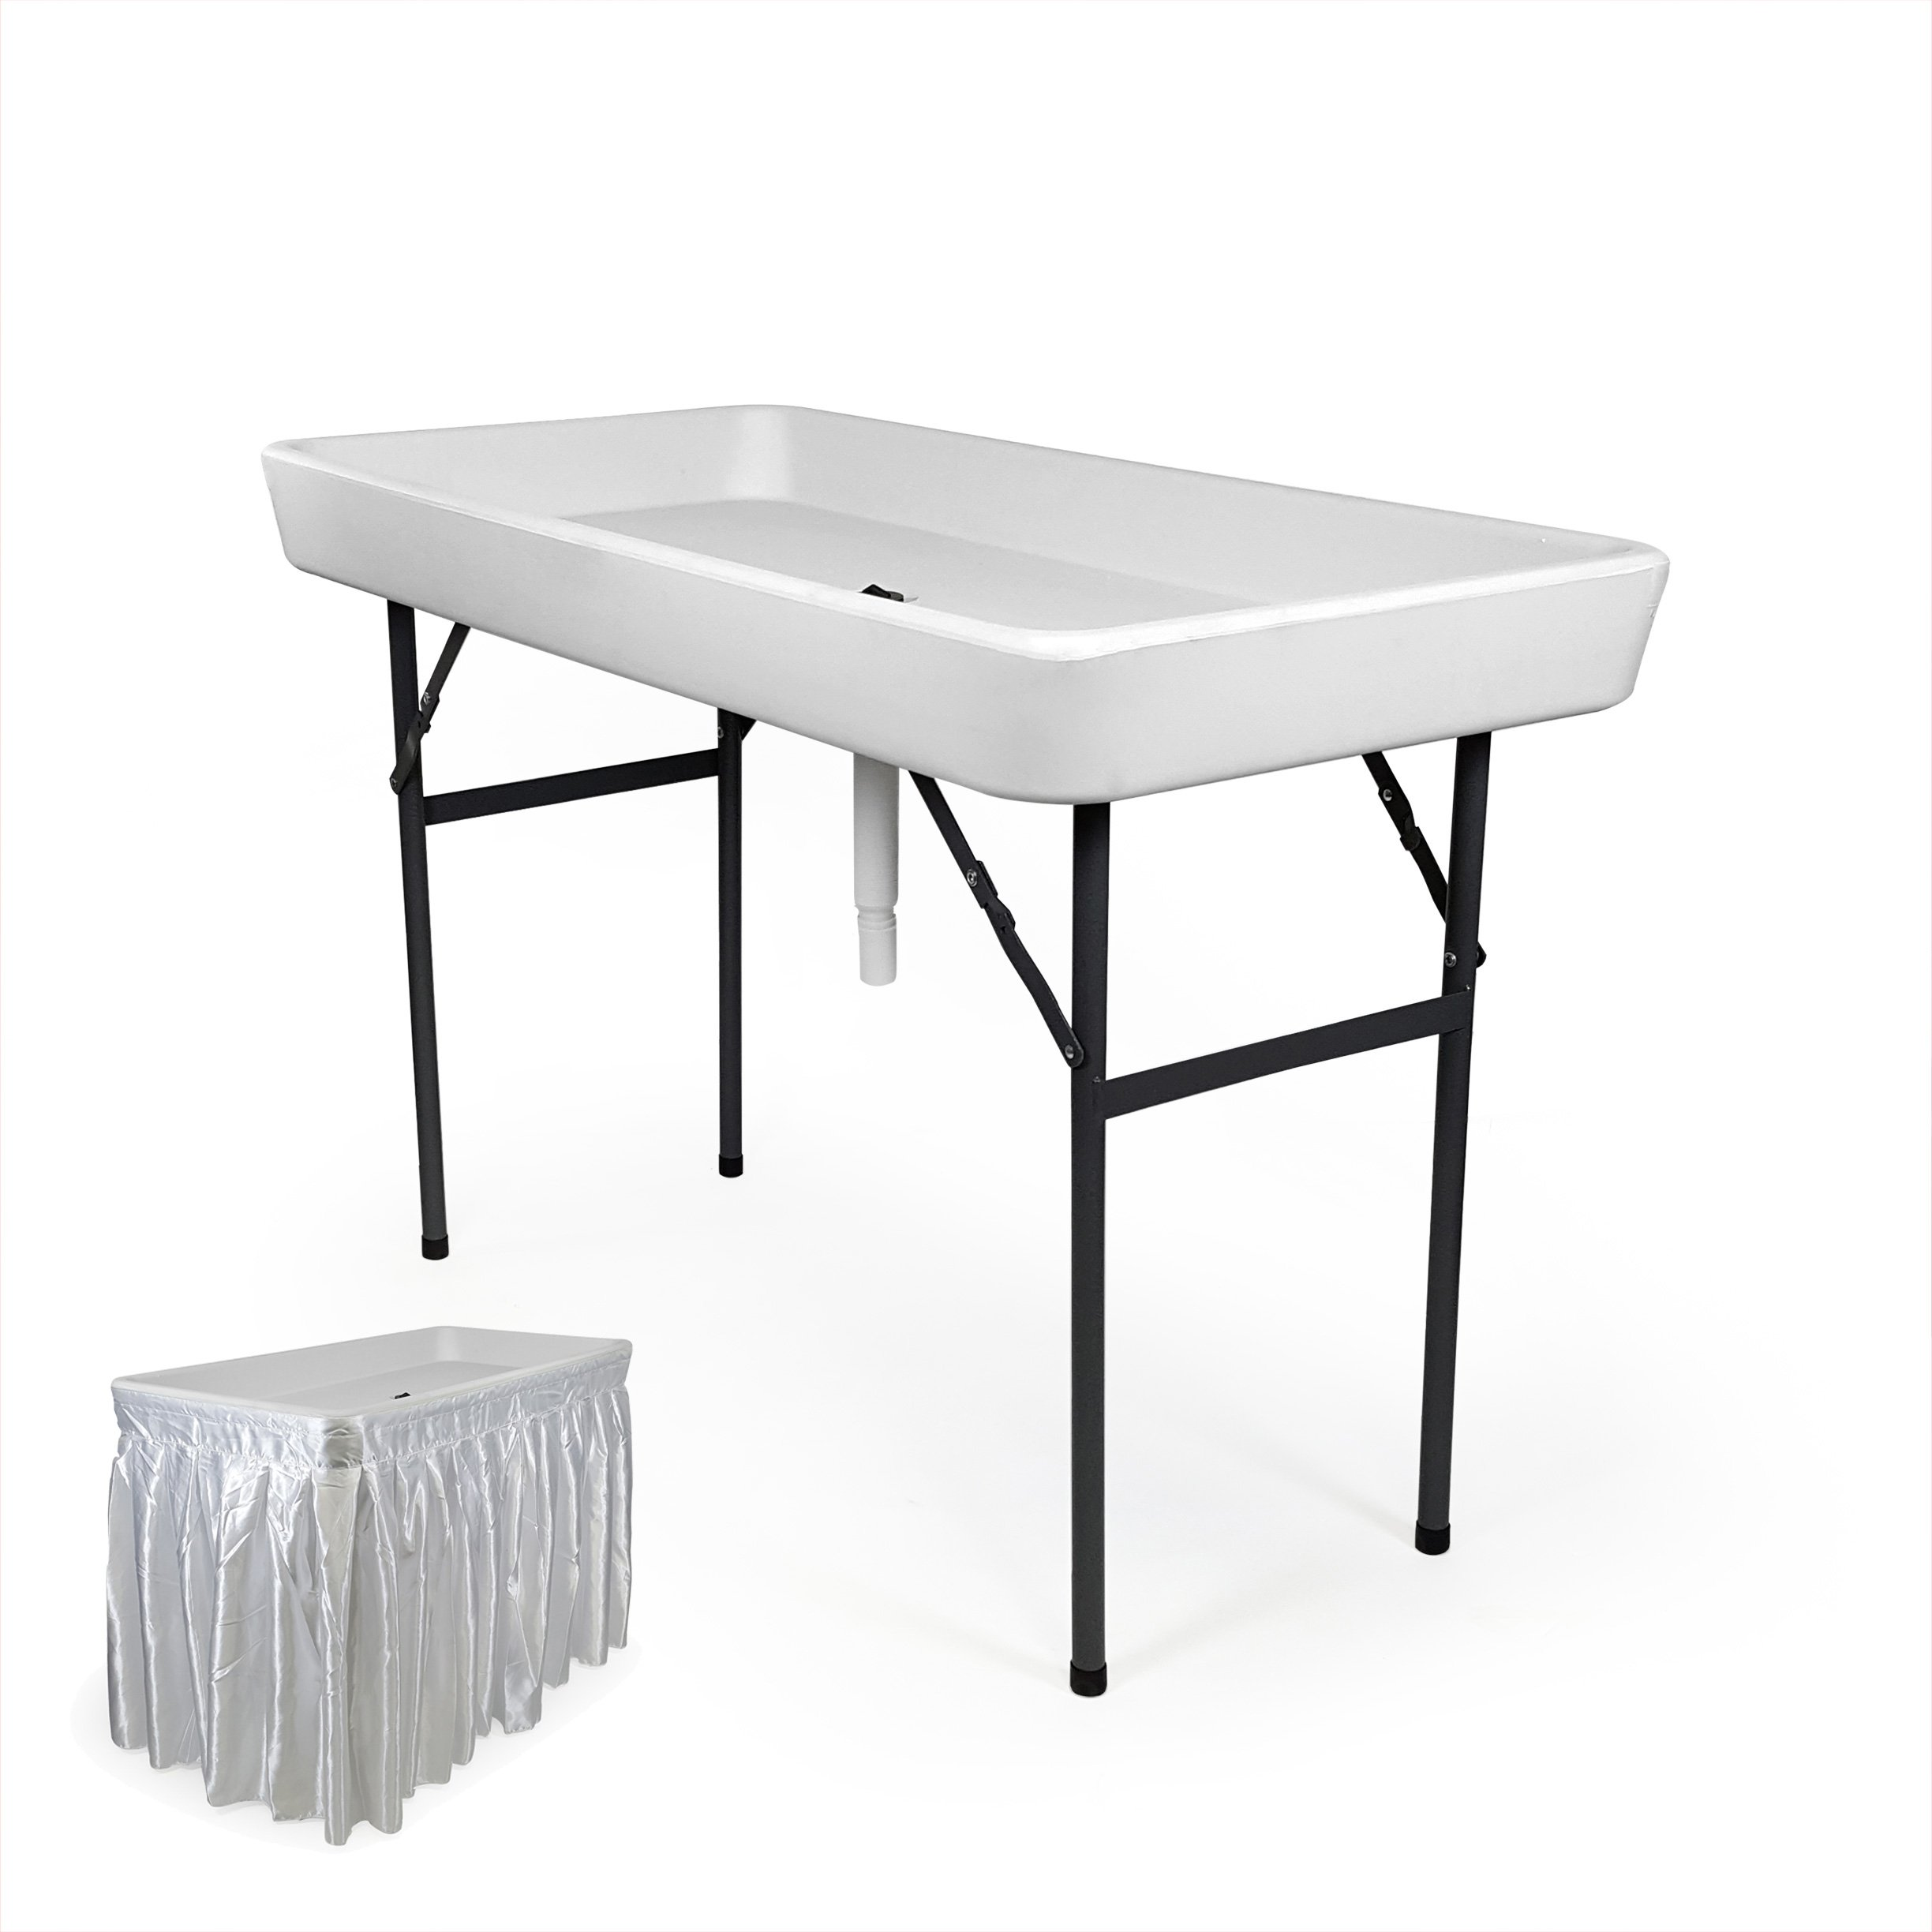 4 Foot Cooler Ice Table Party Ice Folding Table with Matching Skirt - White